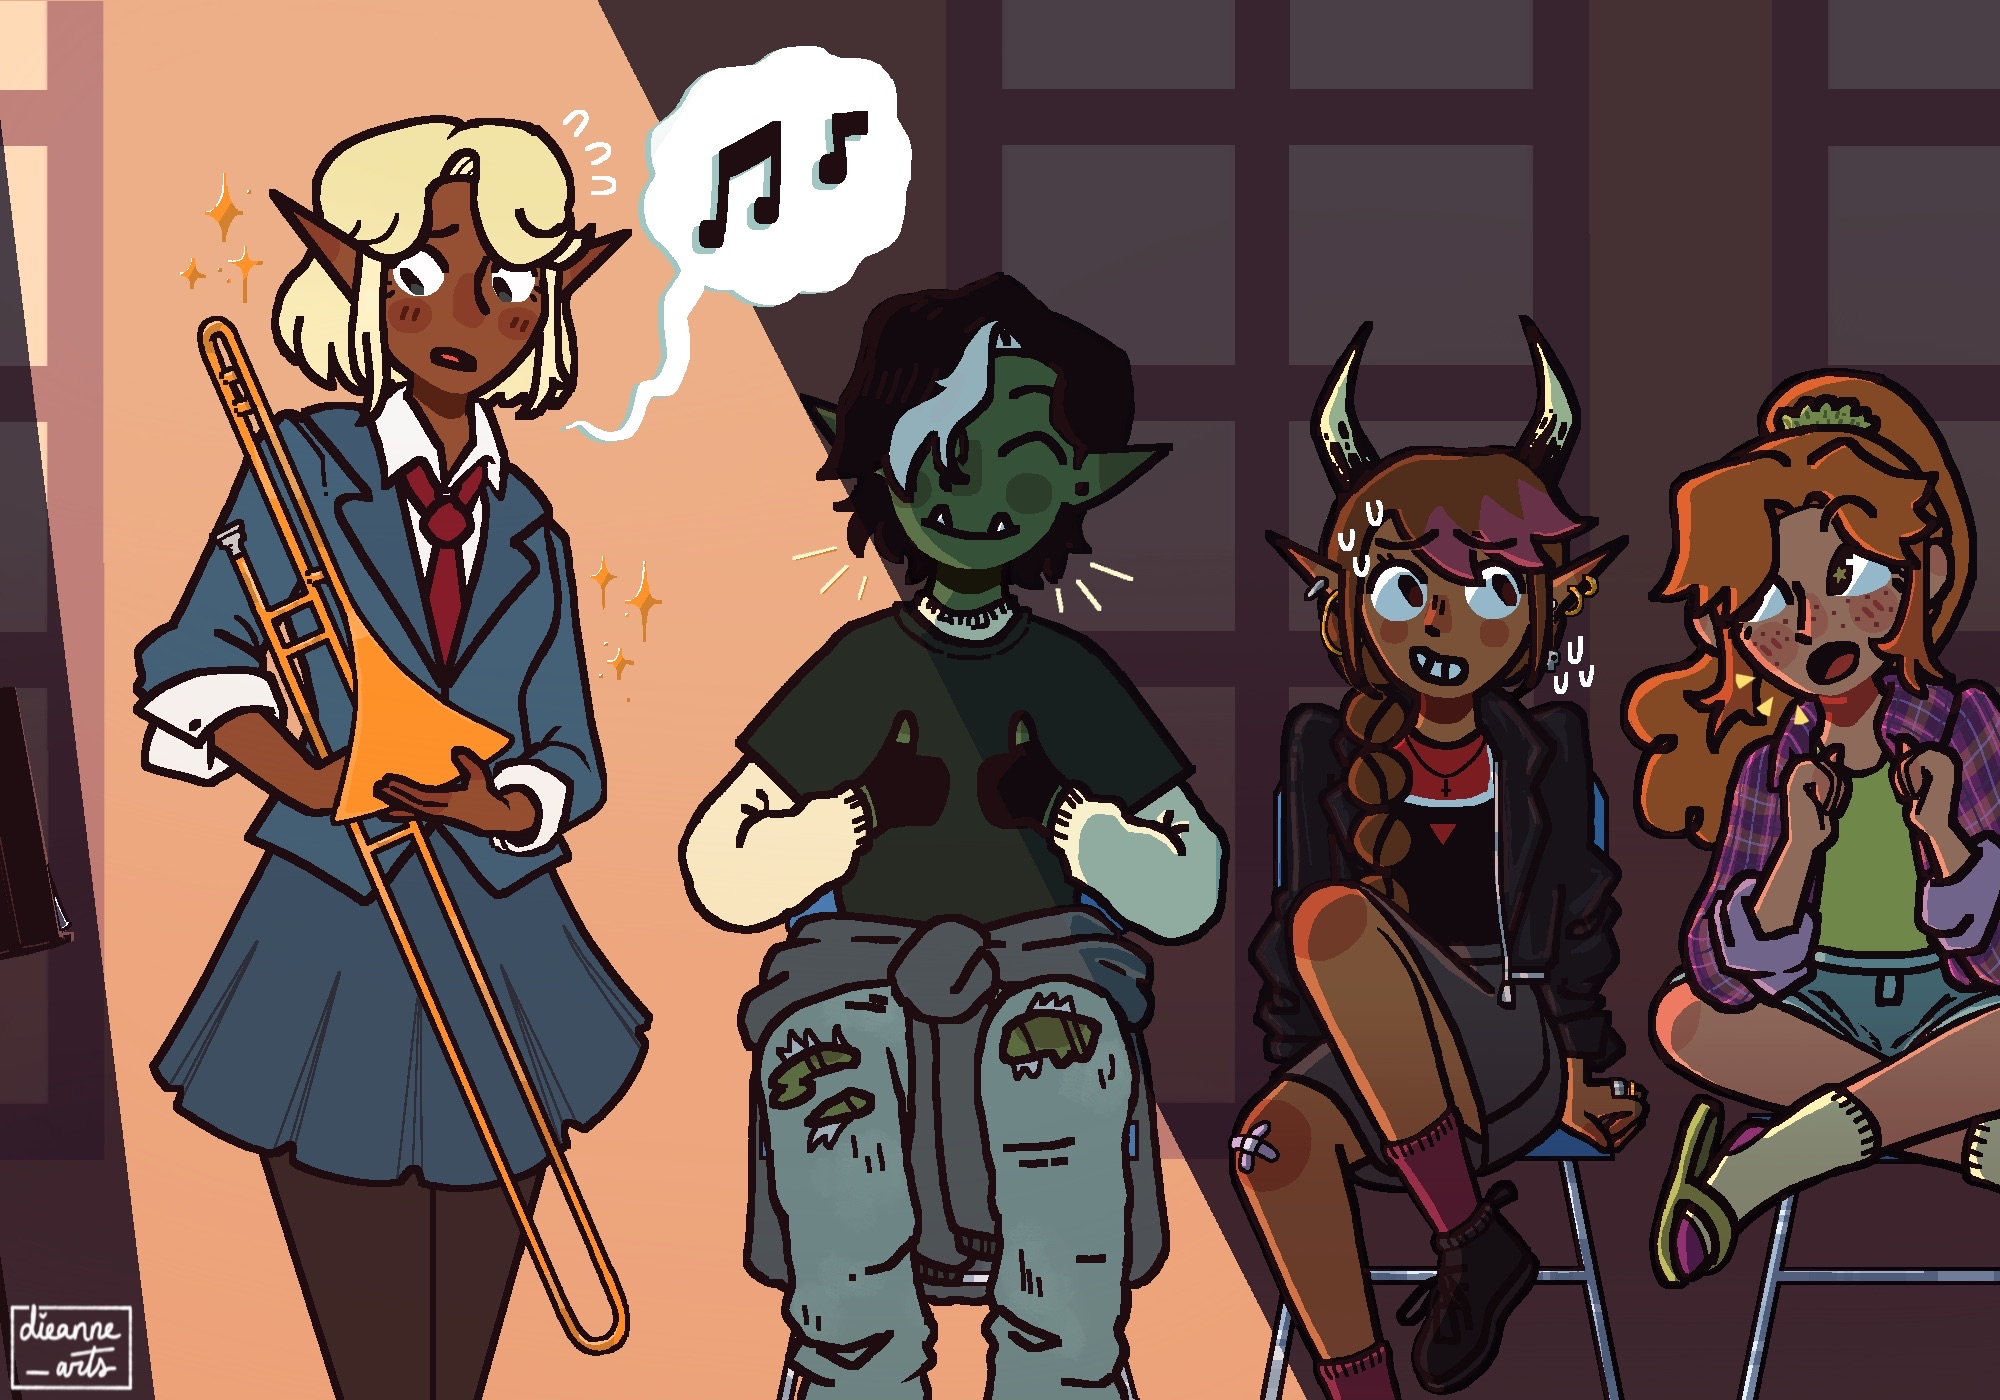 A drawing of Adaine, Kristen, Fig, and Gorgug. The latter three are sitting in chairs, holding respective expressions of delight, anxiety, and support. Adaine stands nervously, musical notes coming from her mouth to indicate singing. She's awash in a subtle spotlight.